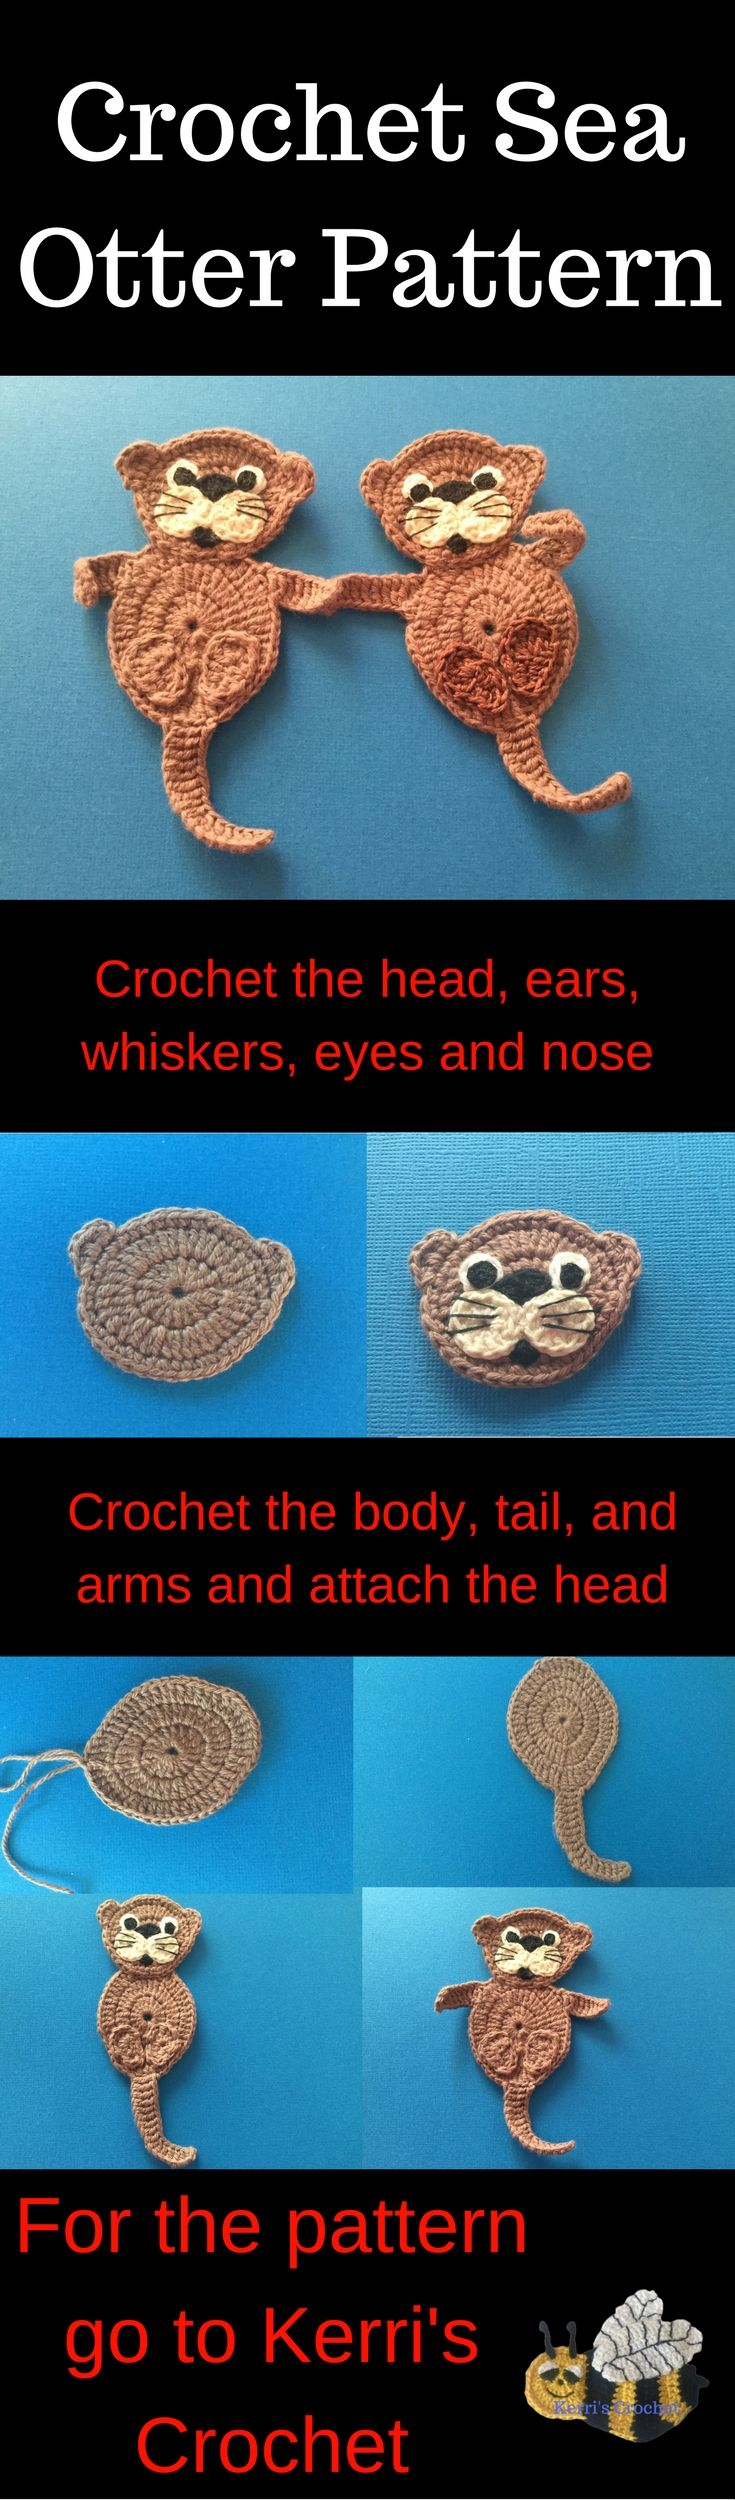 Crochet these sea otters with a free crochet pattern and video tutorial available at Kerri's Crochet.